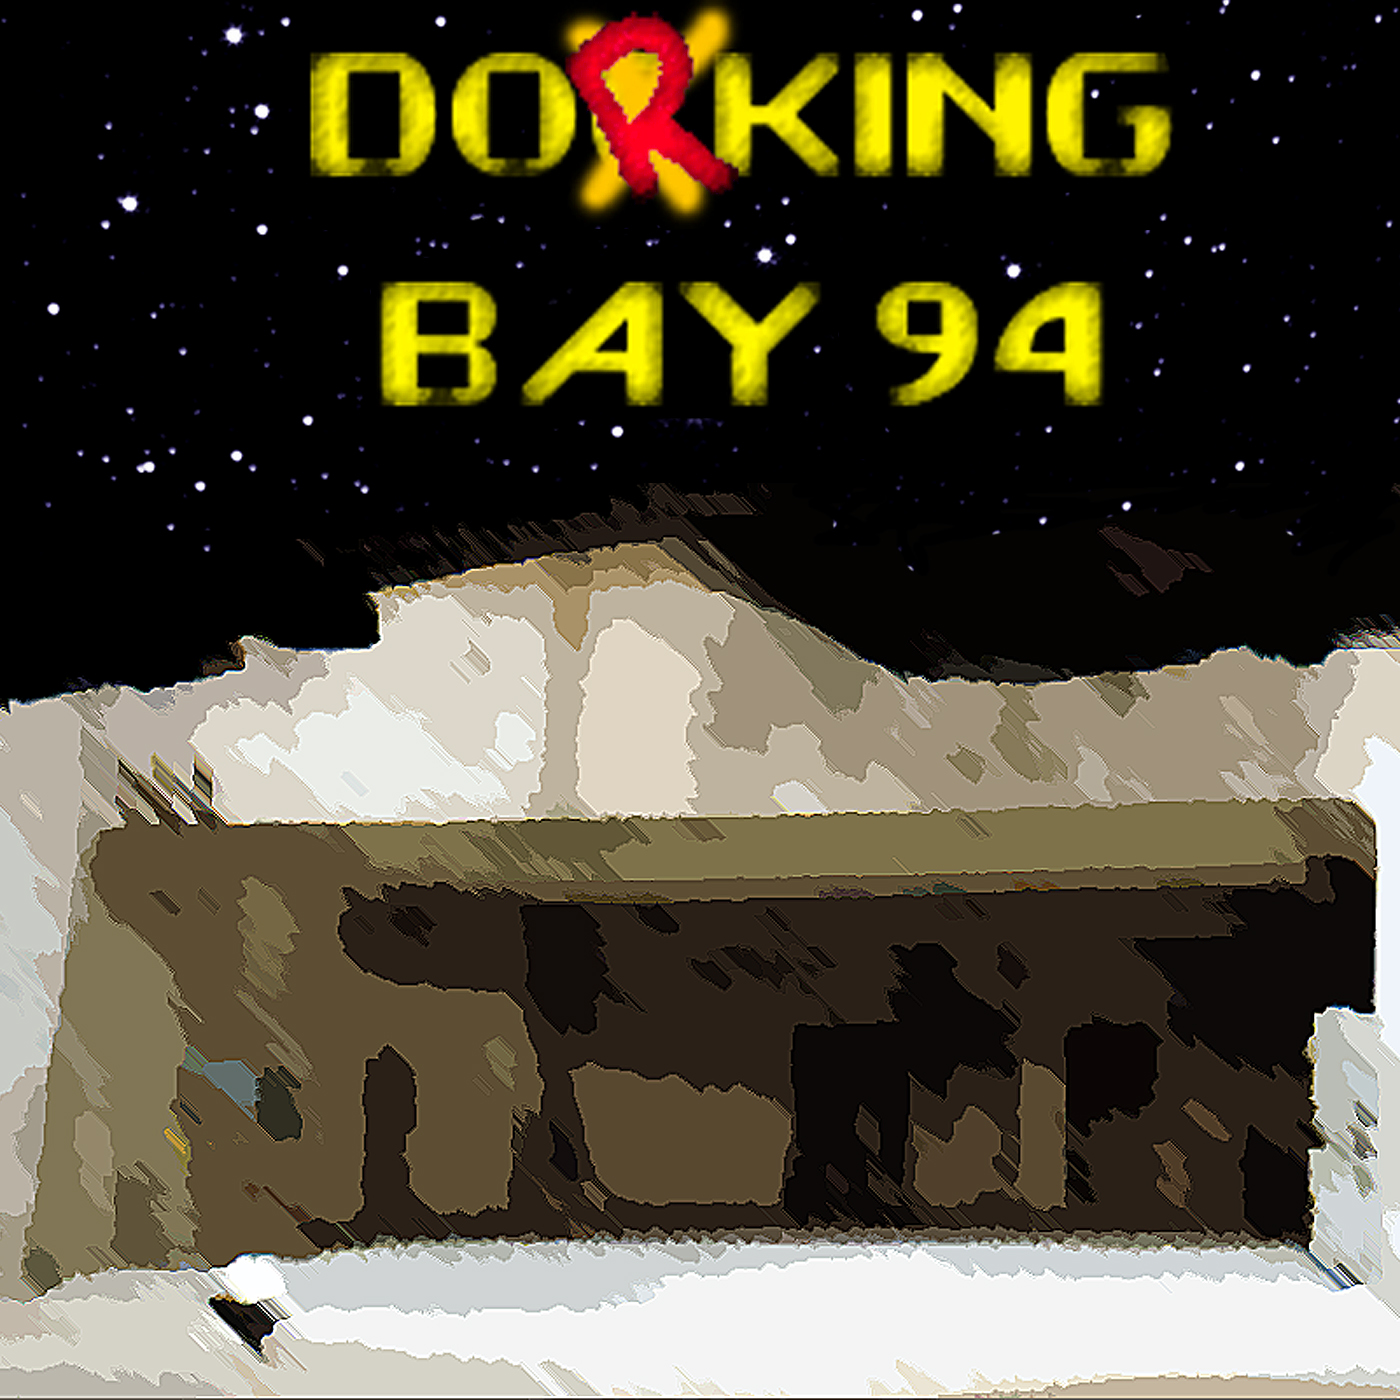 Dorking Bay 94 Podcast - Dorking Bay 94